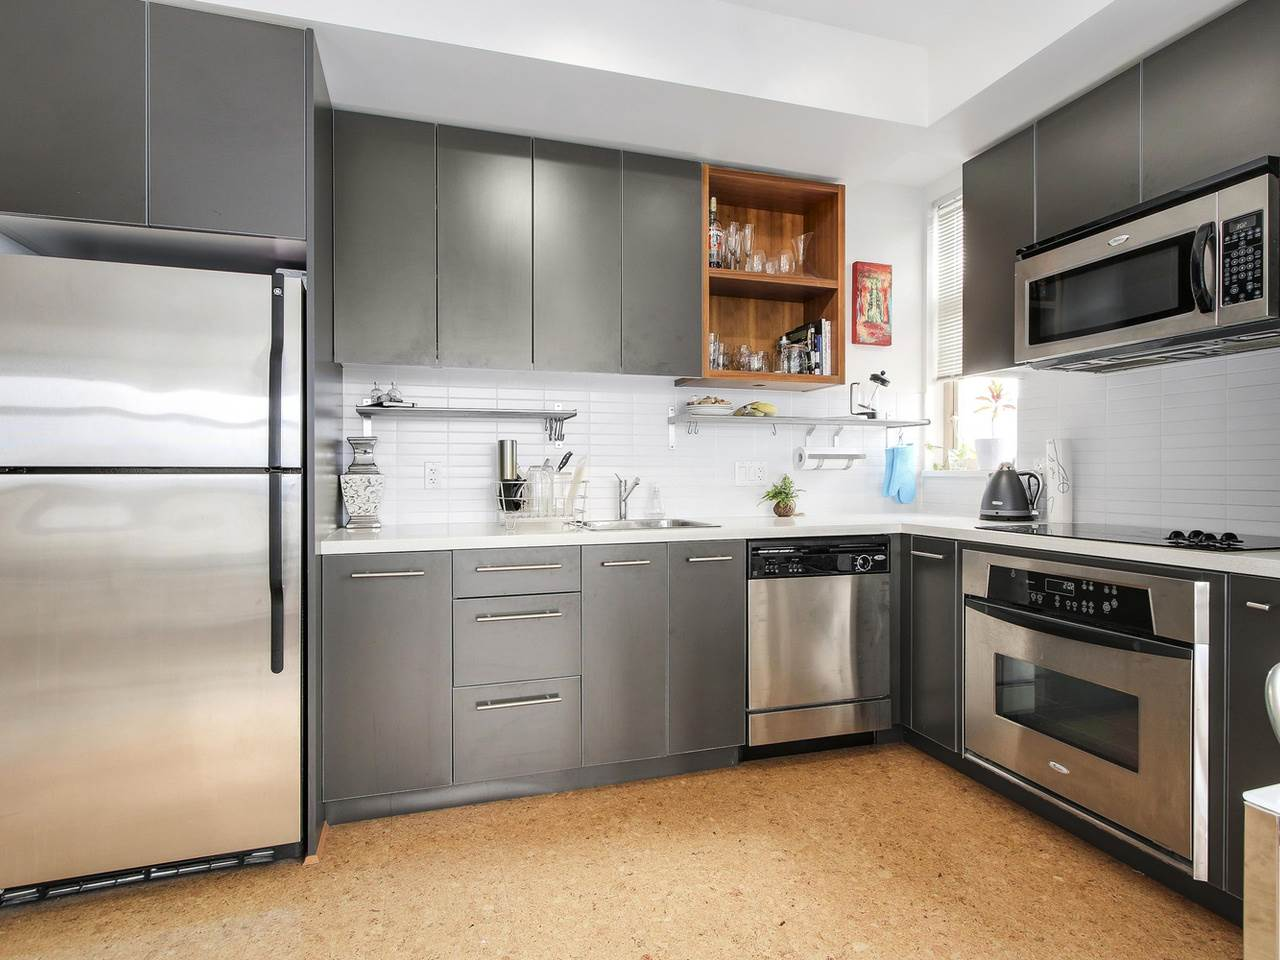 "Photo 6: 403 2828 MAIN Street in Vancouver: Mount Pleasant VE Condo for sale in ""DOMAIN"" (Vancouver East)  : MLS® # R2157426"